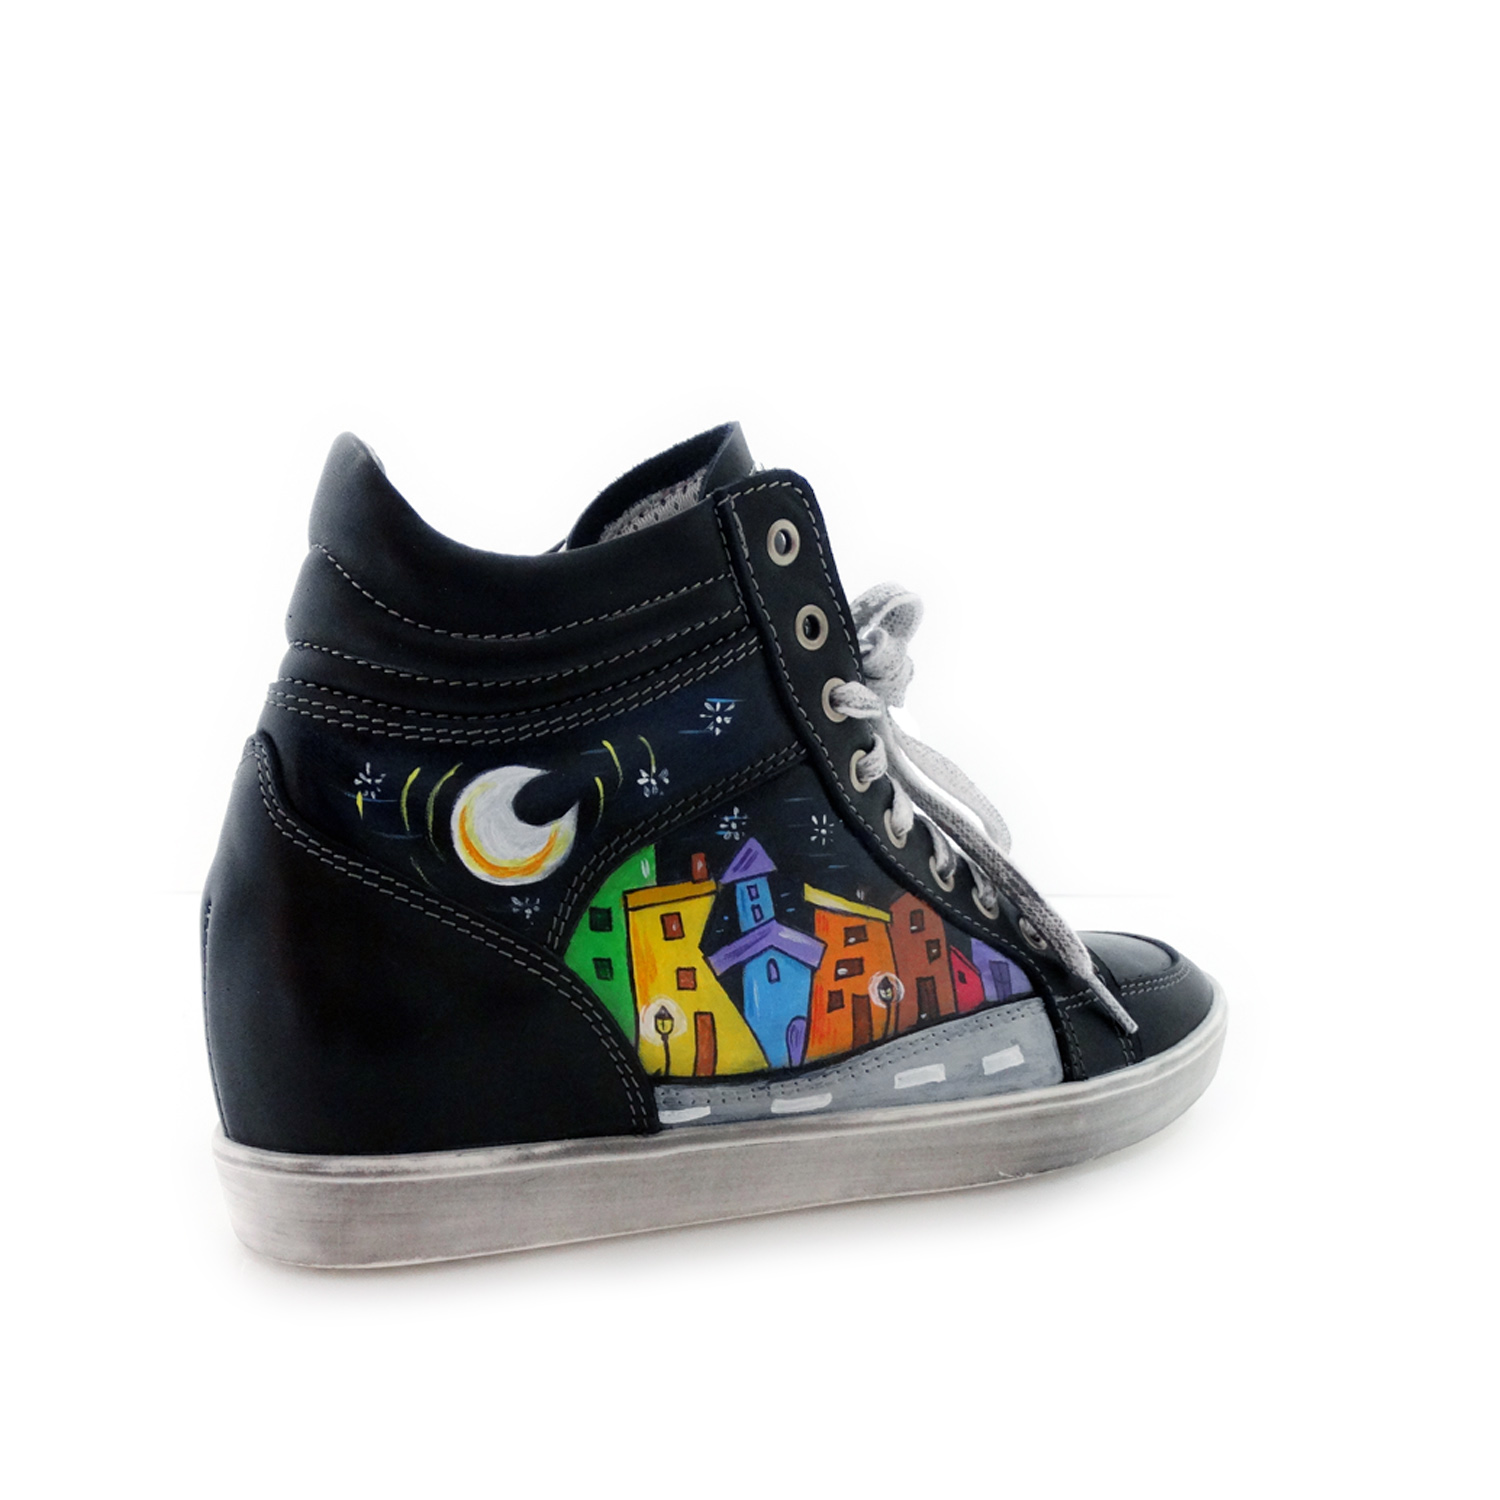 Scarpe sneakers dipinte a mano – Cartoon city night